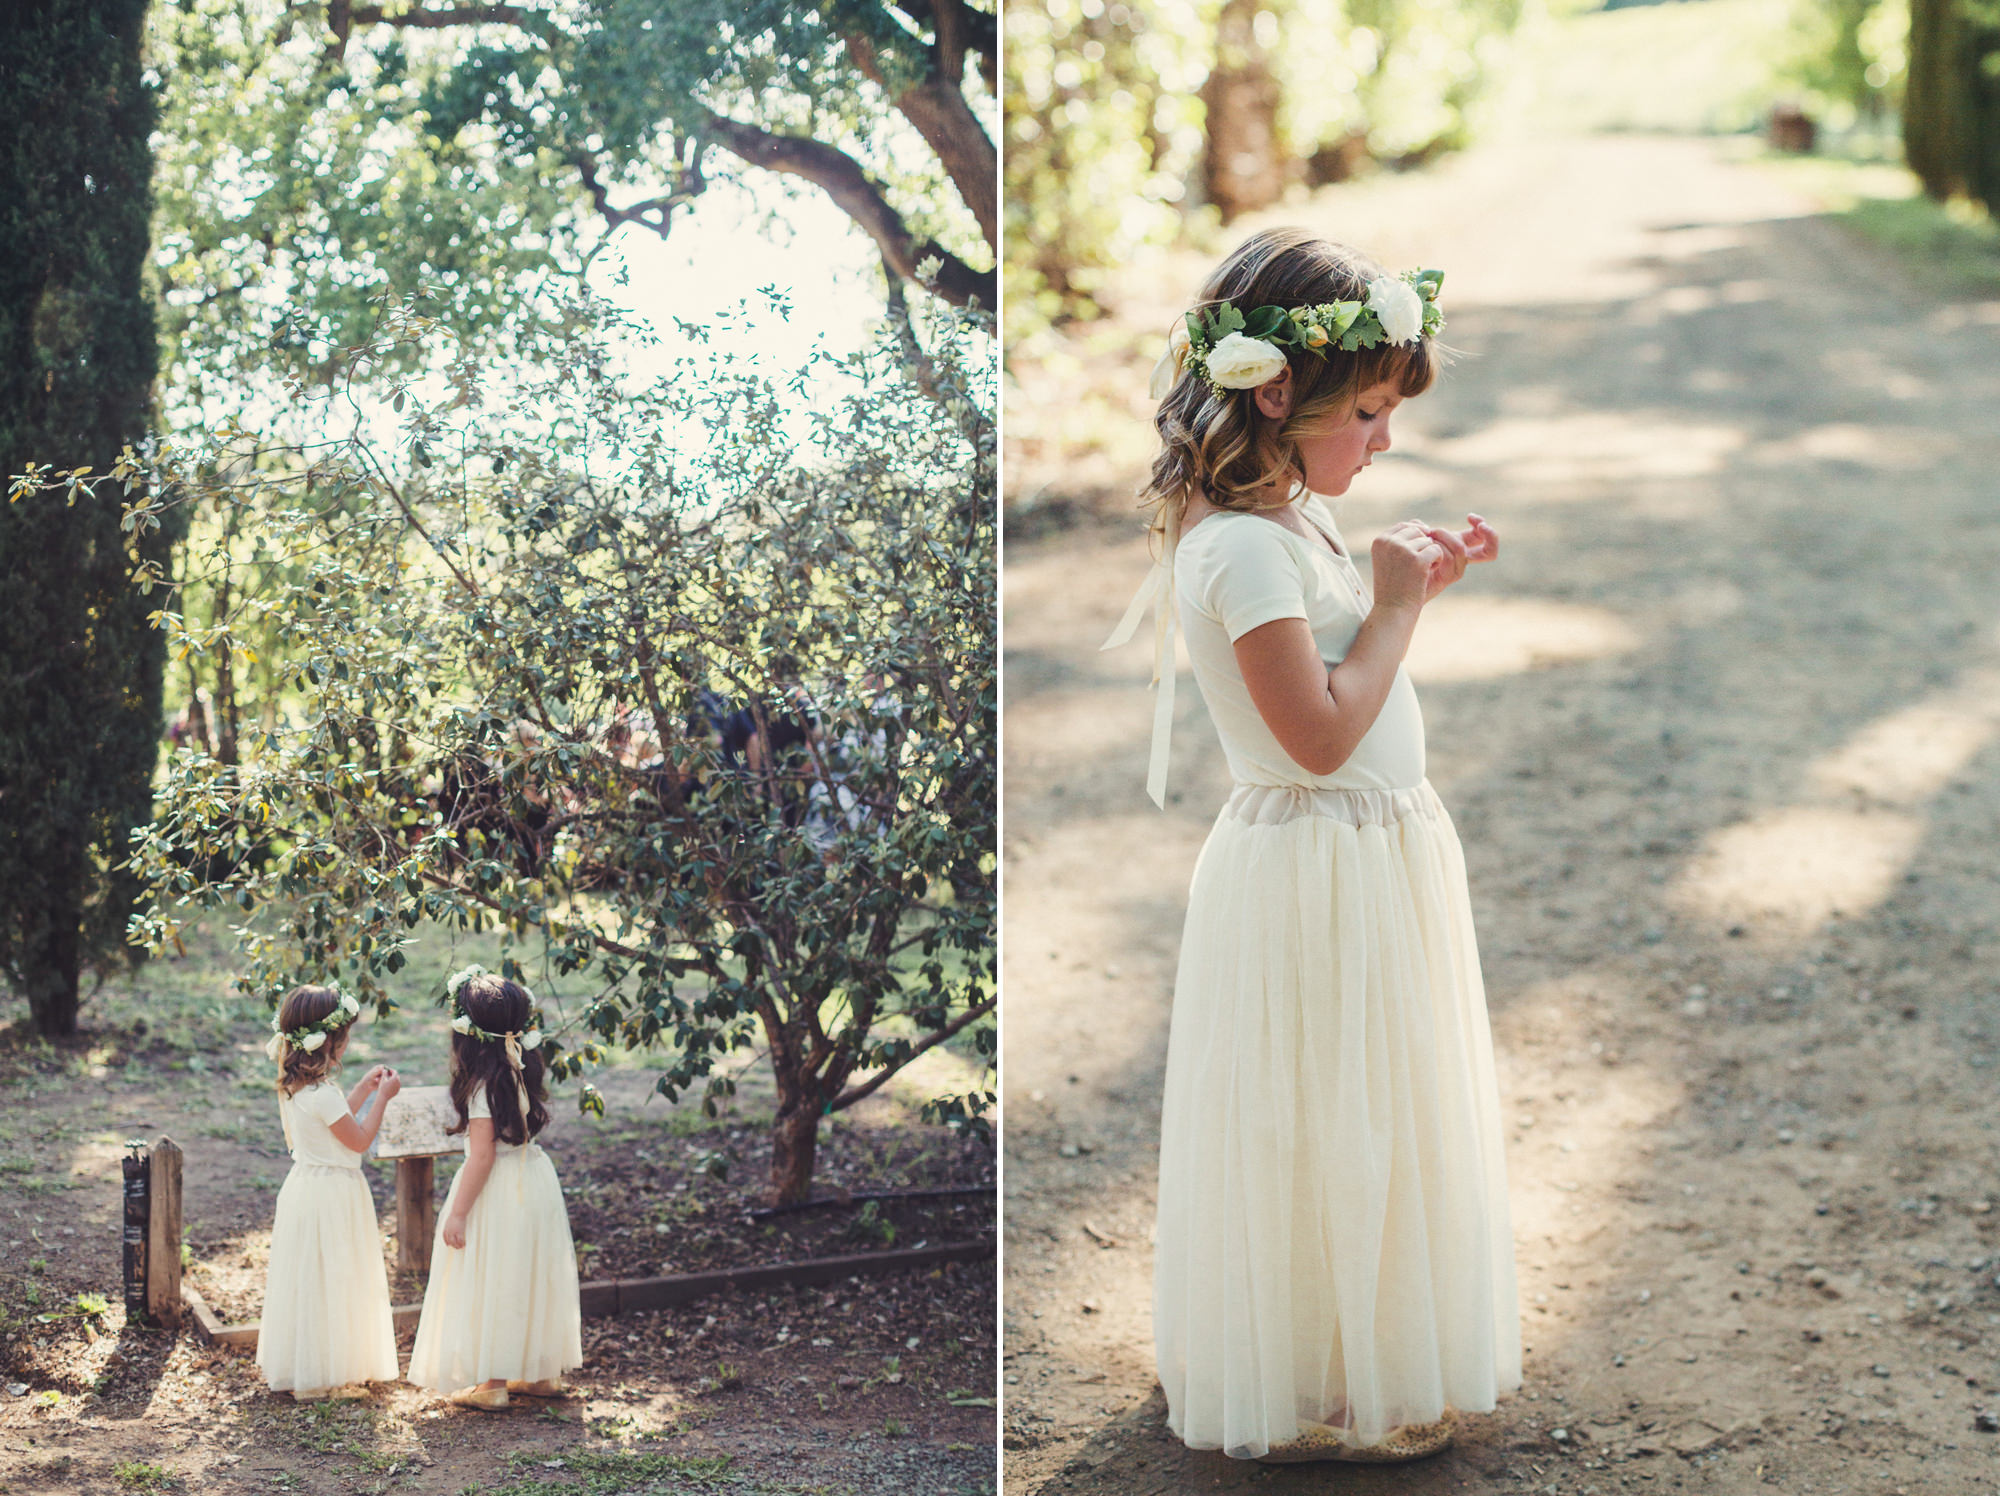 Wedding in Campovida @Anne-Claire Brun 83